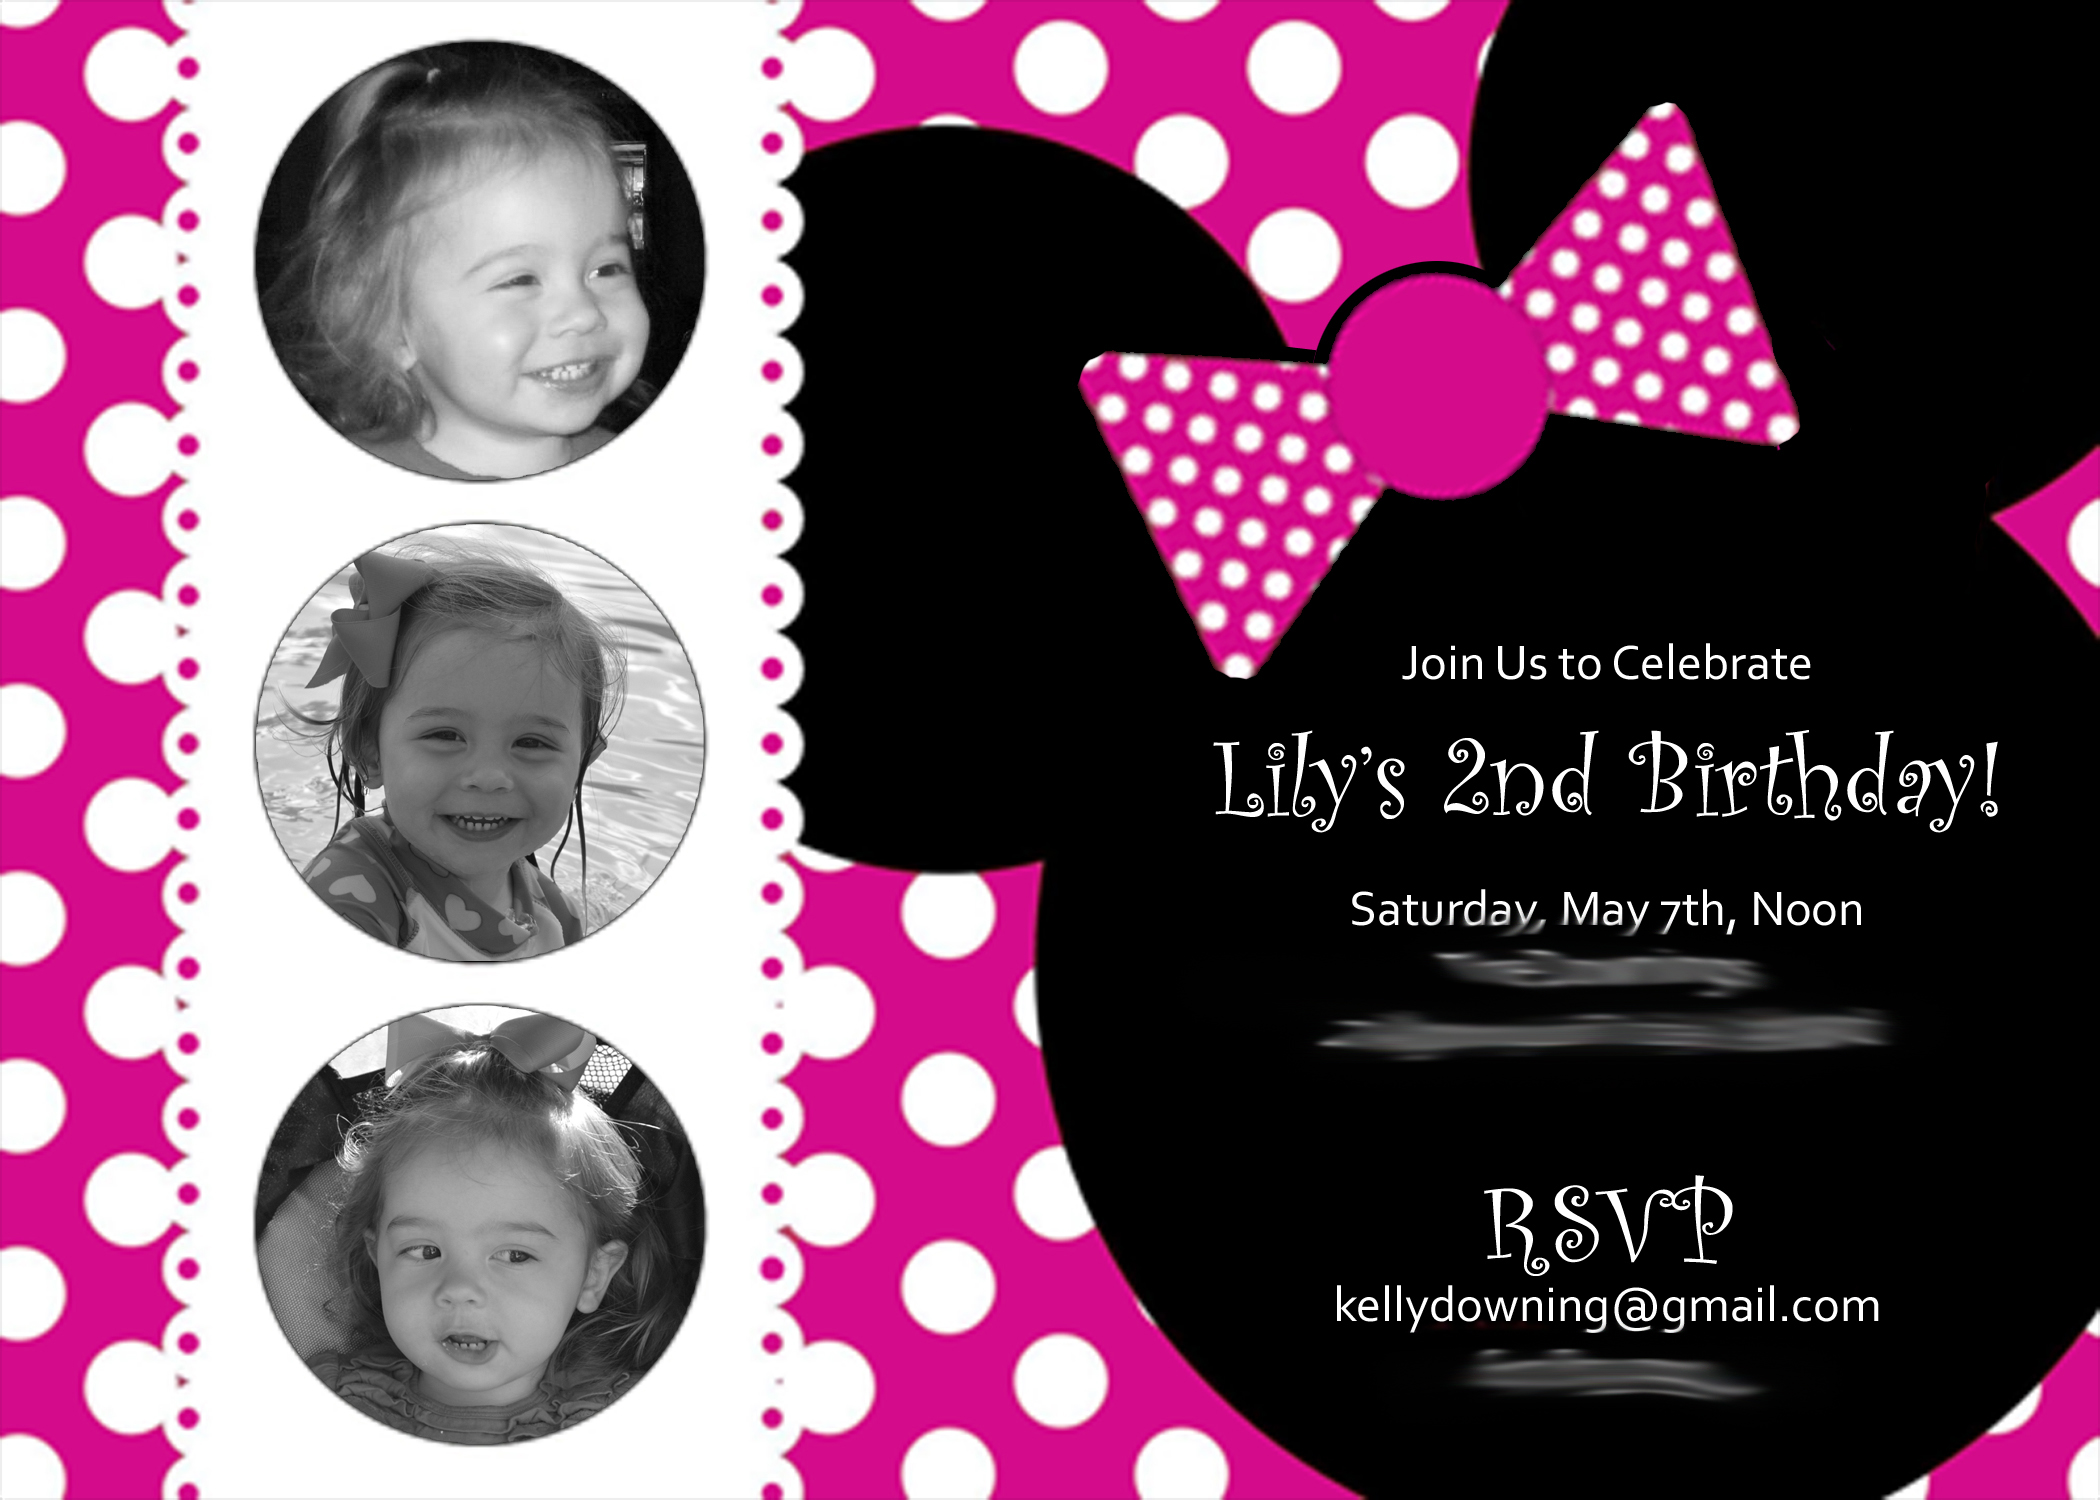 minnie mouse 2nd birthday party invitation wording ; minnie-mouse-template-invitation-inspiration-minnie-mouse-birthday-invitation-wording-for-2nd-birthday-of-minnie-mouse-template-invitation